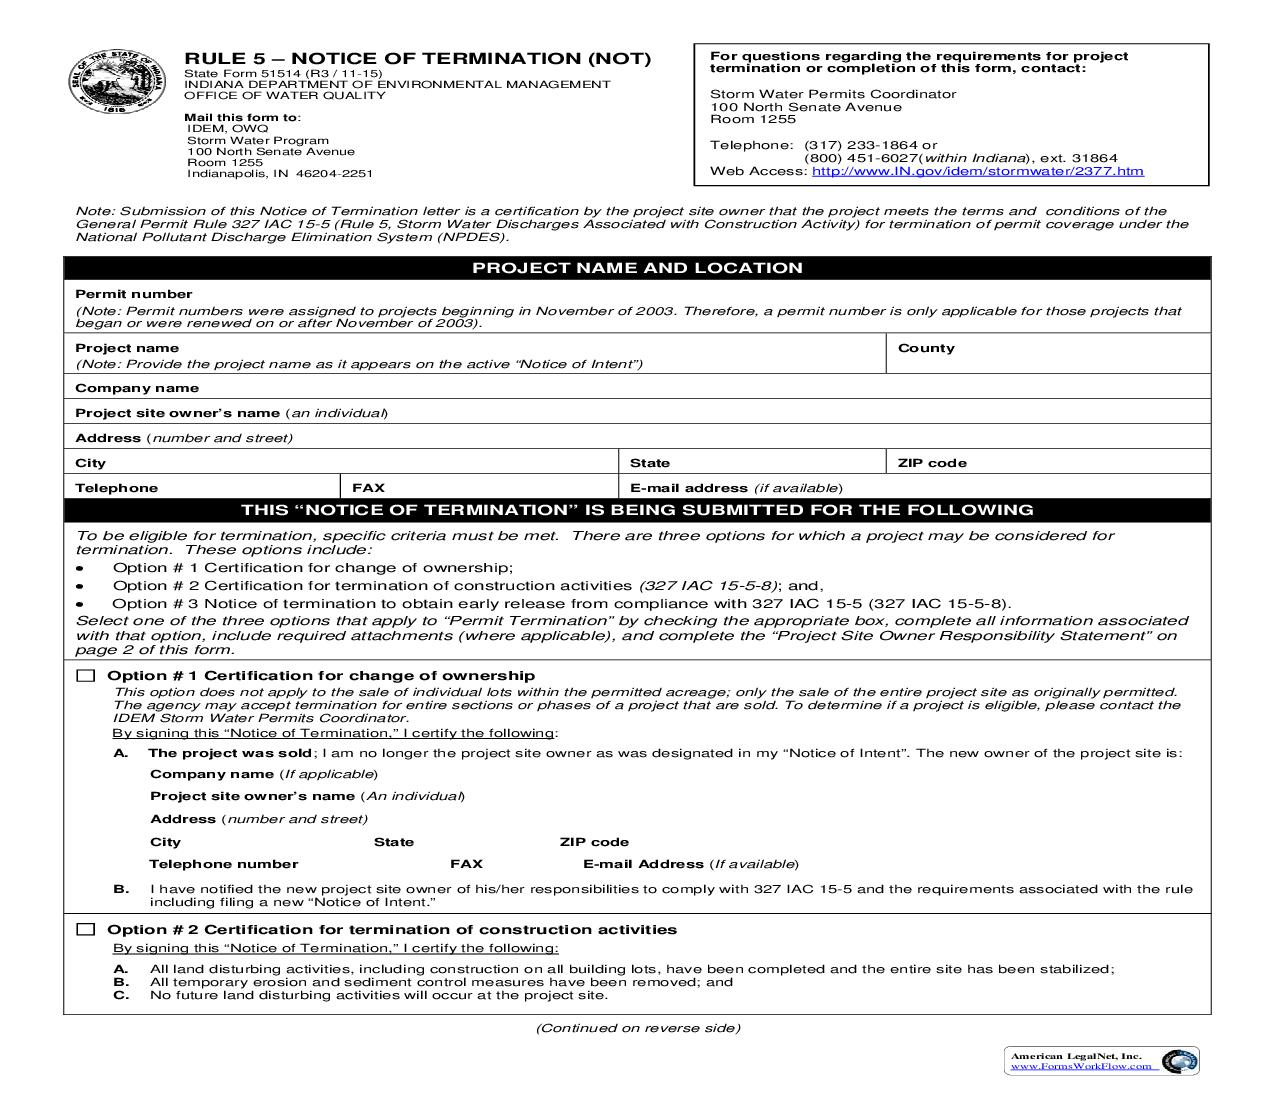 Rule 5 Notice Of Termination (NOT) {51514} | Pdf Fpdf Doc Docx | Indiana